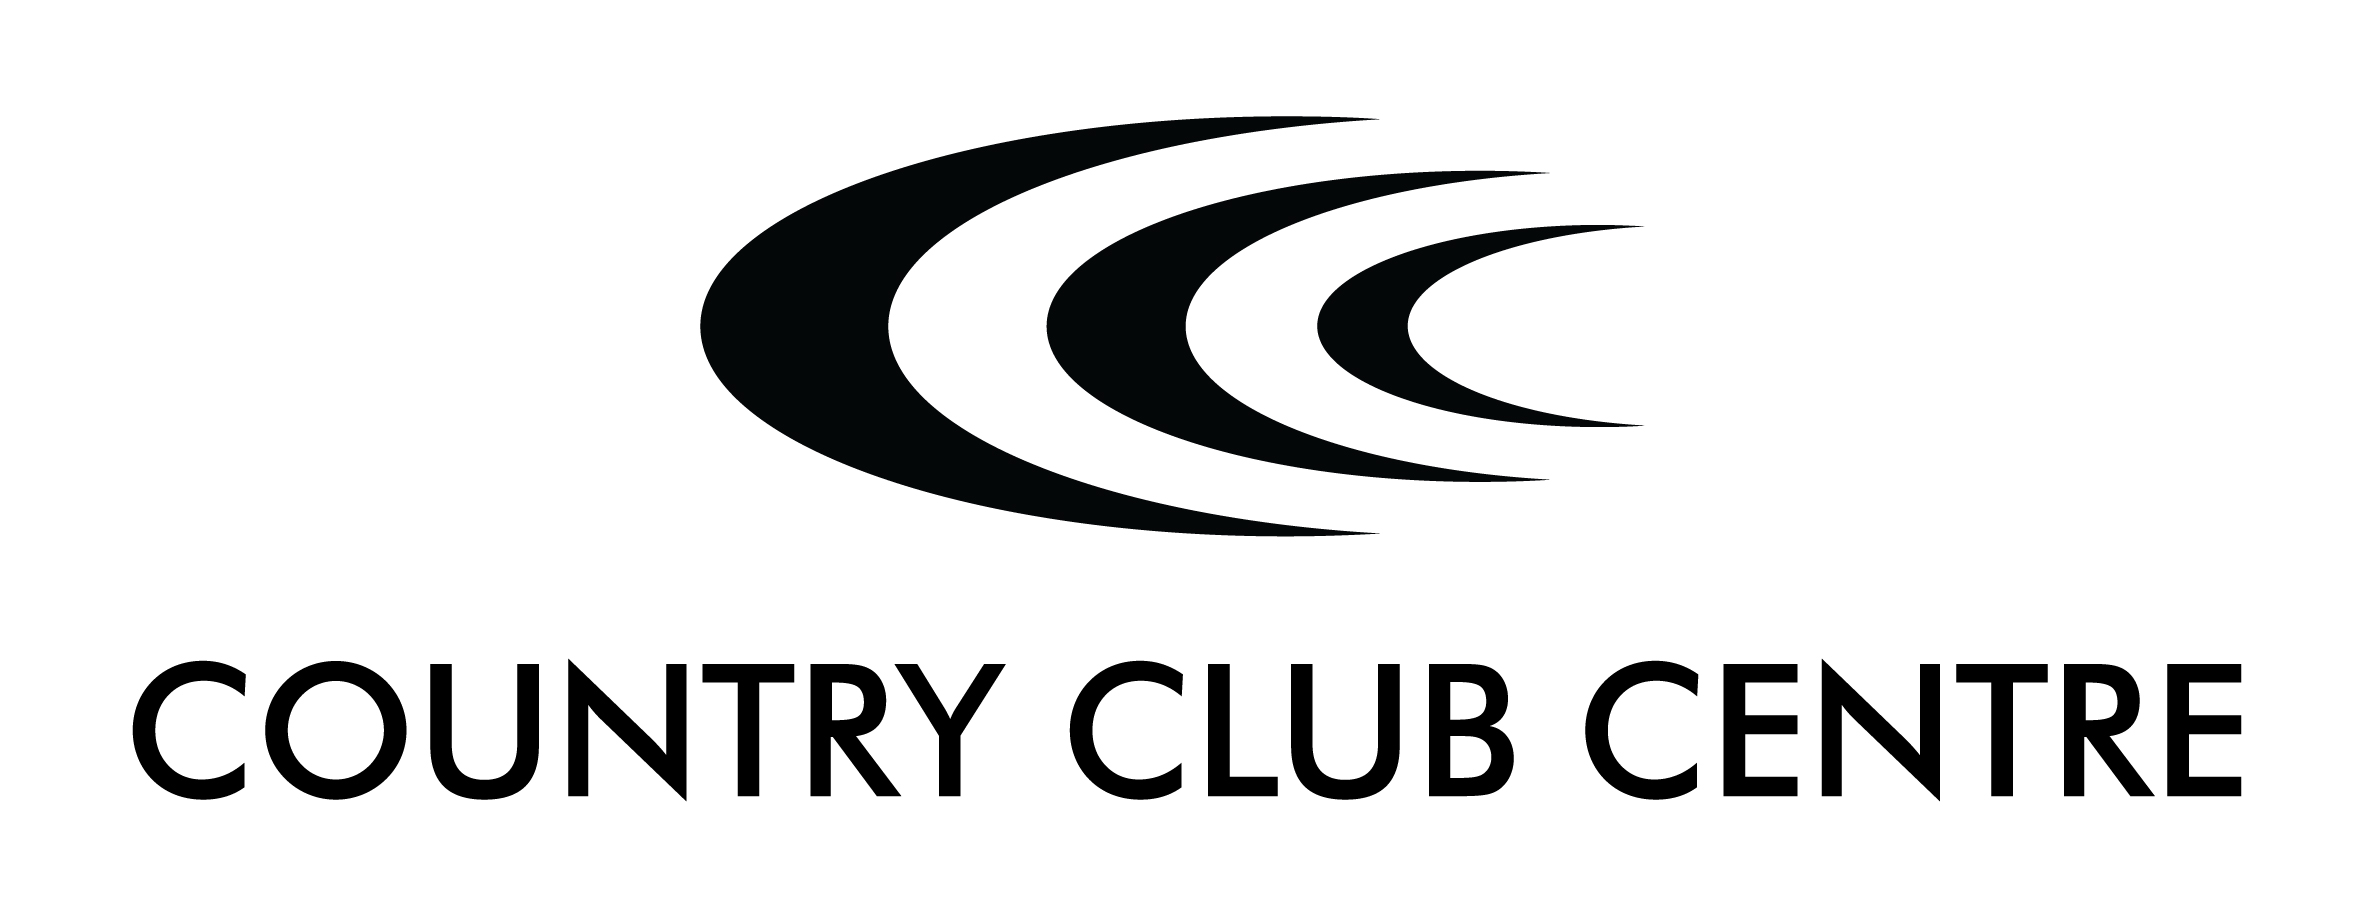 Country Club Centre